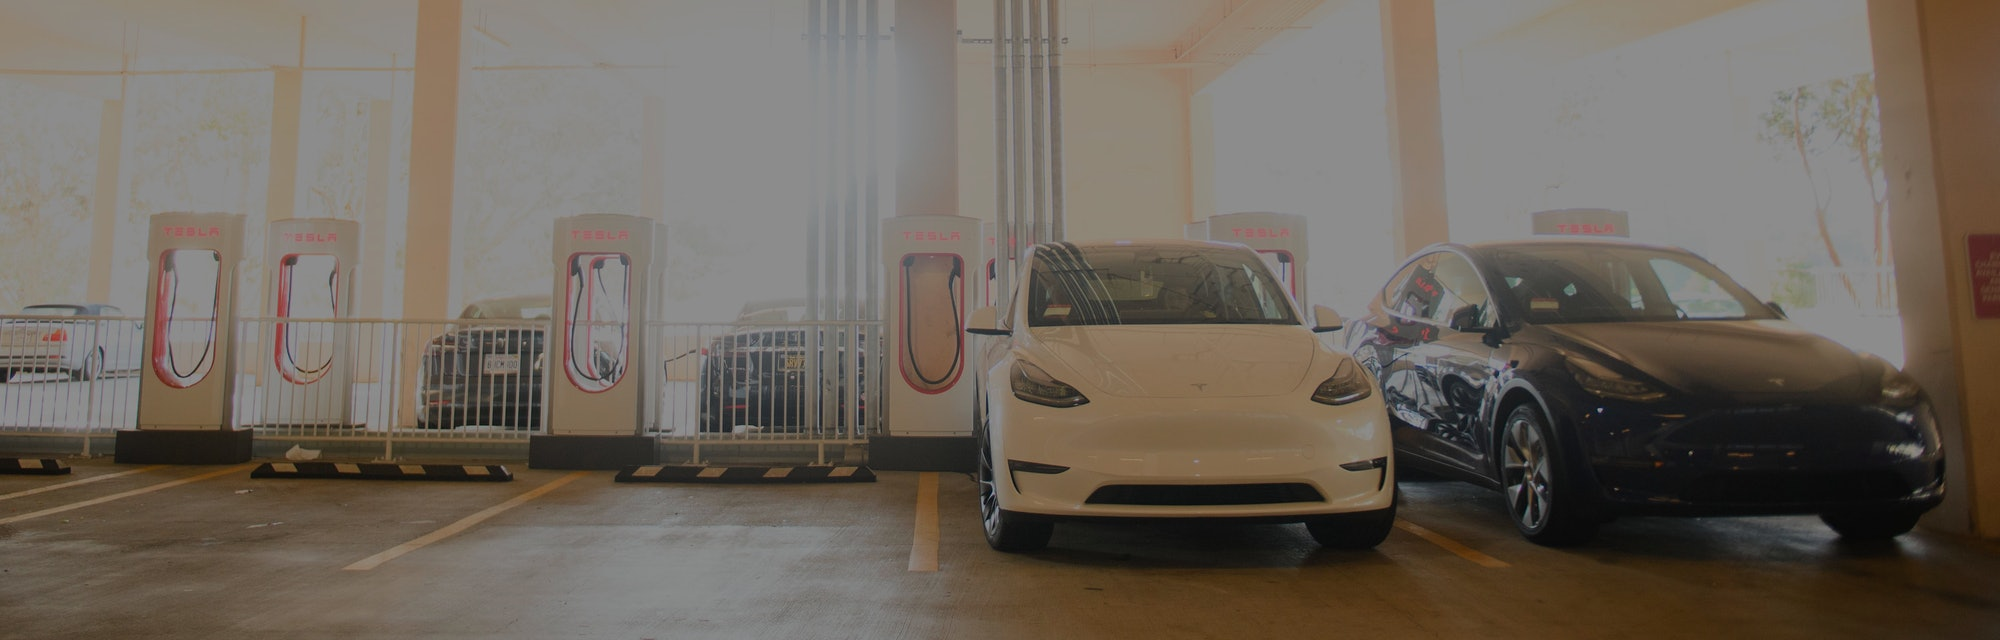 Tesla Inc. electric vehicles charge at the company's supercharger station inside a parking garage on January 4, 2021 in Hermosa Beach, California. - After shares rocketed higher in 2020 on surging auto deliveries, Tesla enters 2021 with plenty of momentum even as its vision of taking electric cars mainstream remains a way off. (Photo by Patrick T. Fallon / AFP) (Photo by PATRICK T. FALLON/AFP via Getty Images)